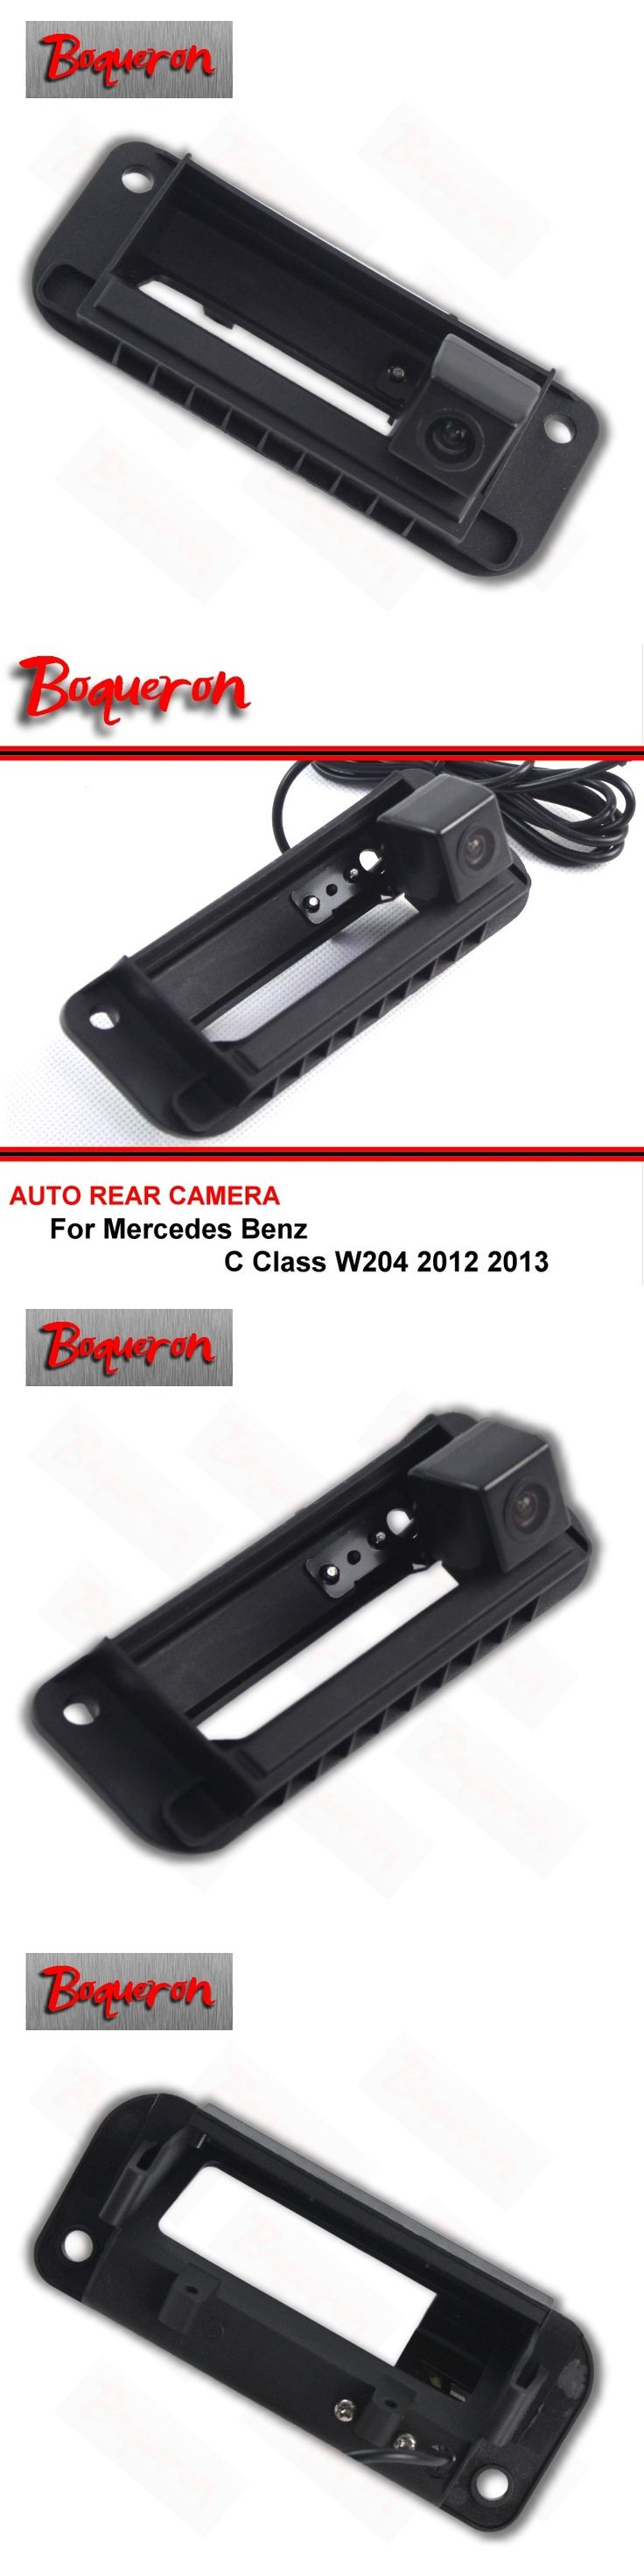 For Mercedes Benz C Class W204 2012 2013 HD CCD Trunk handle Reversing Camera Car Back up Parking Camera Rear View Camera